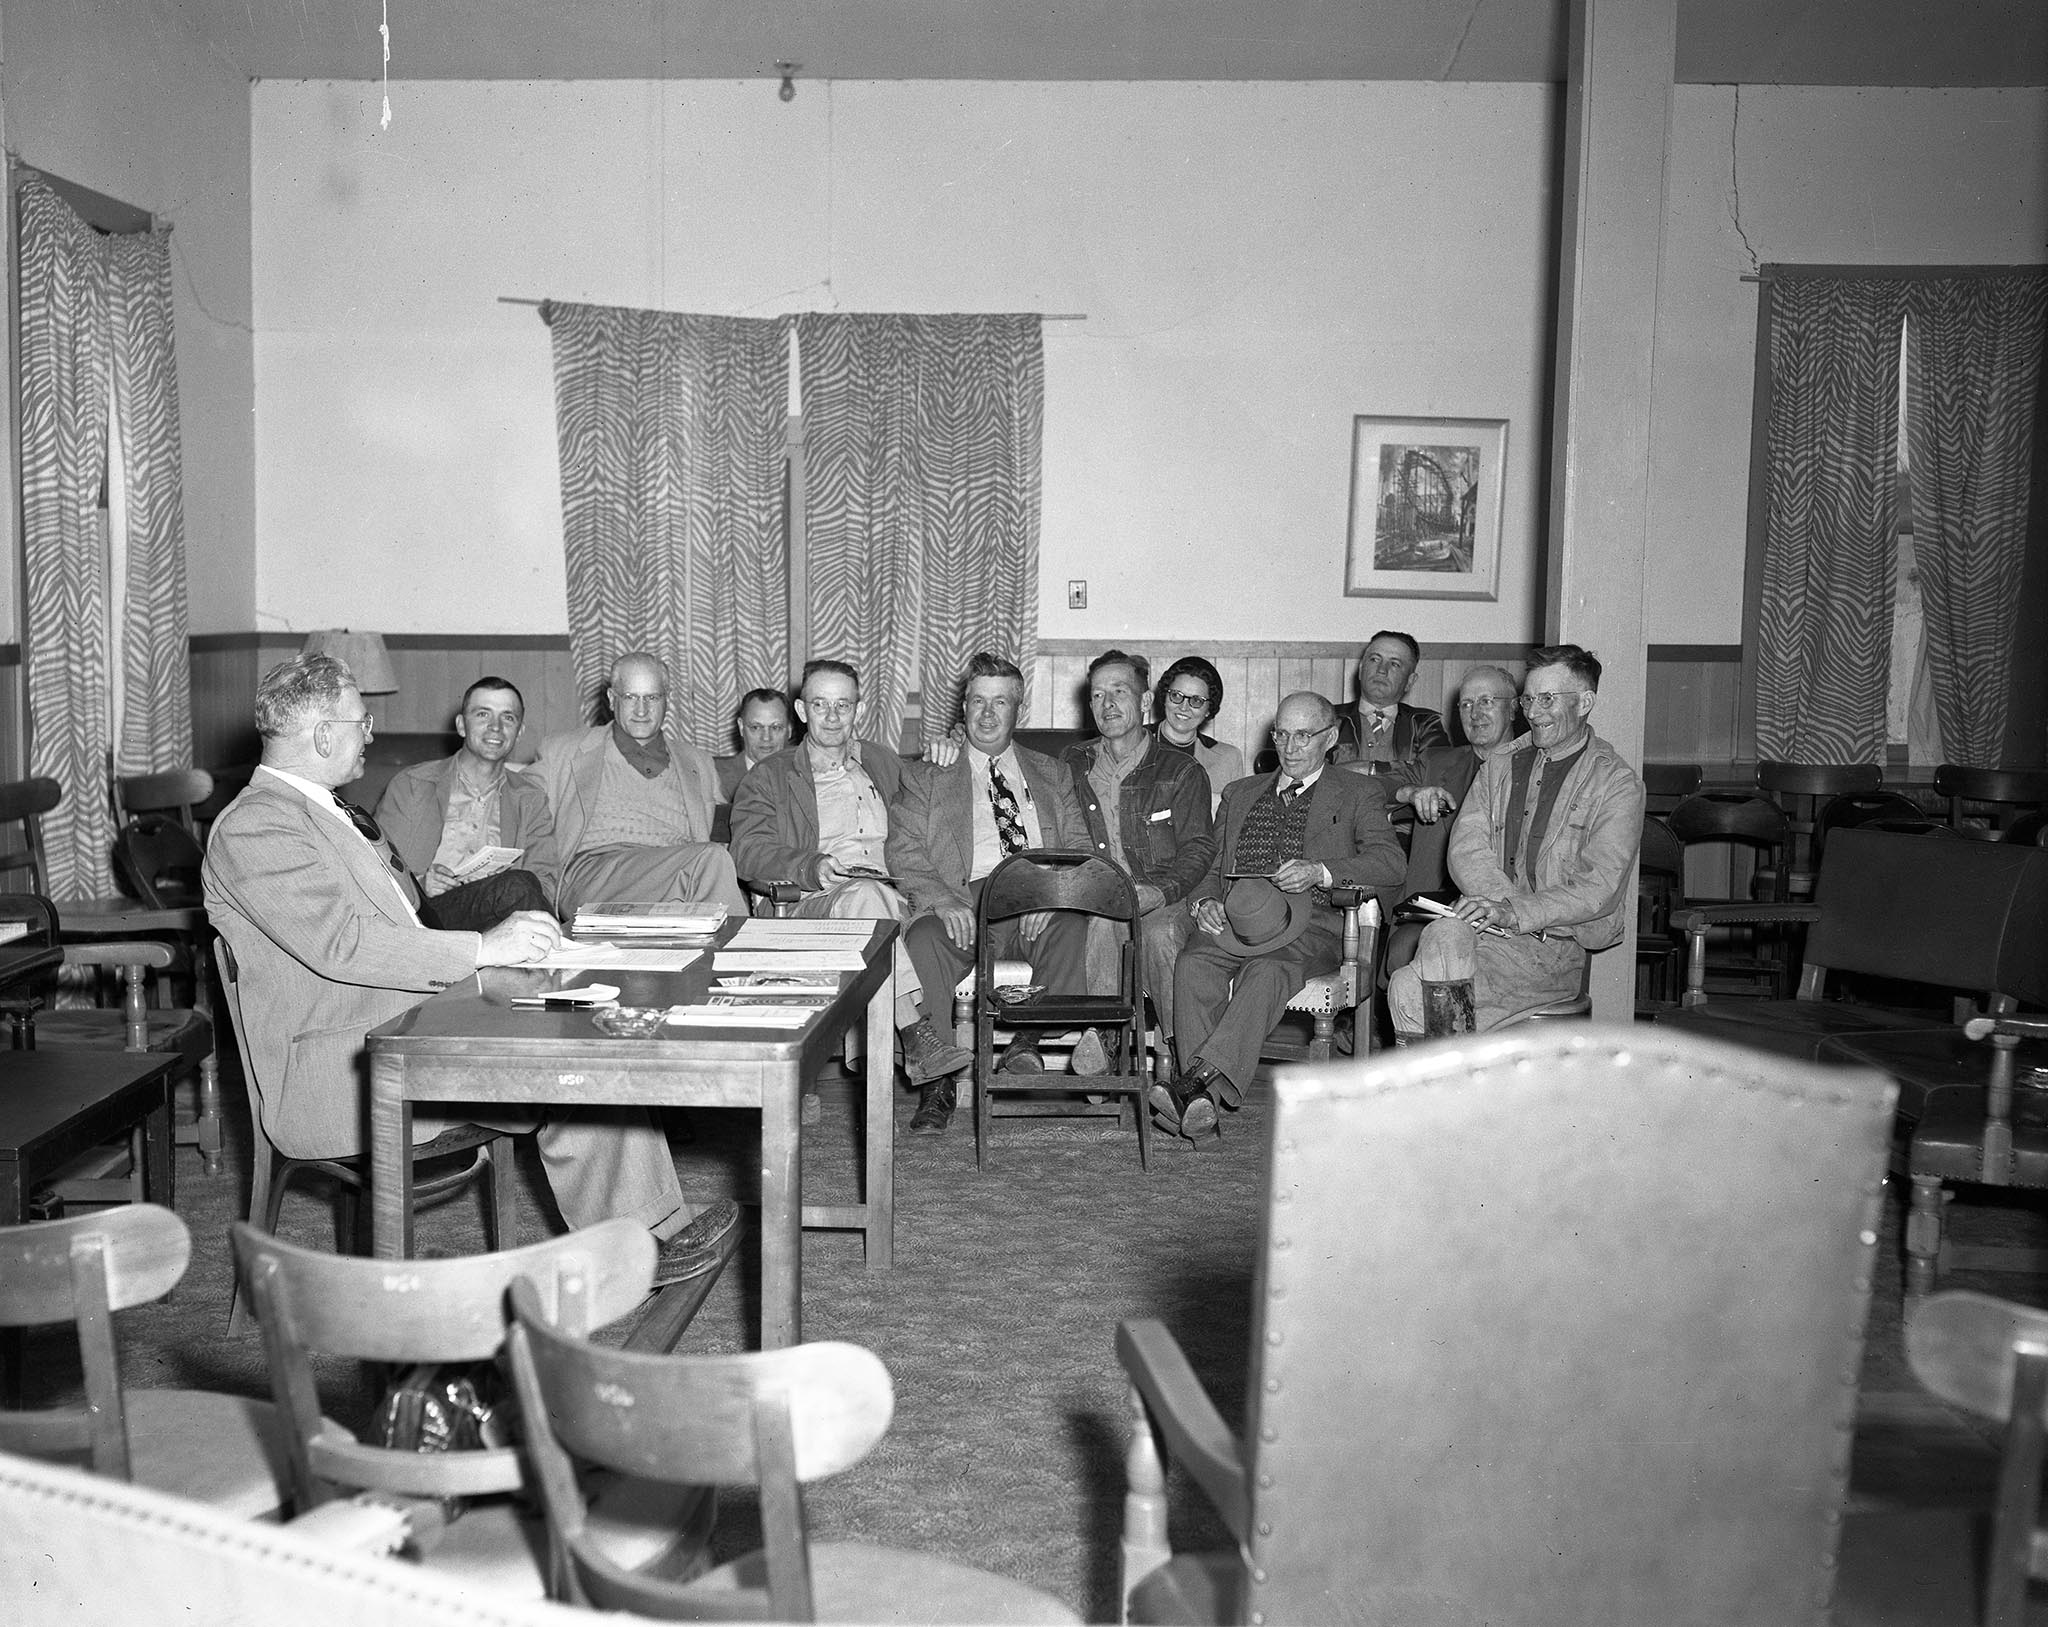 Early in 1952, every county Farm Bureau in Oklahoma was visited by state leaders in an effort to create more personal relationships between local members and the state organization. This photo was taken at one of the first conferences, which was held at the Hugo Community Center with Choctaw County Farm Bureau members. At the desk is Jack Norris, President of the Choctaw County Farm Bureau. In the background are (left to right) Lex Eddleman, John I. Taylor, Dan Arnold, Ernest Means, Clarence Adams, Glen Grubbs, Mrs. Eugene Jones, O.T. Eddleman, Mart Fowler, E.A. Kissick, and Rolly Morris.